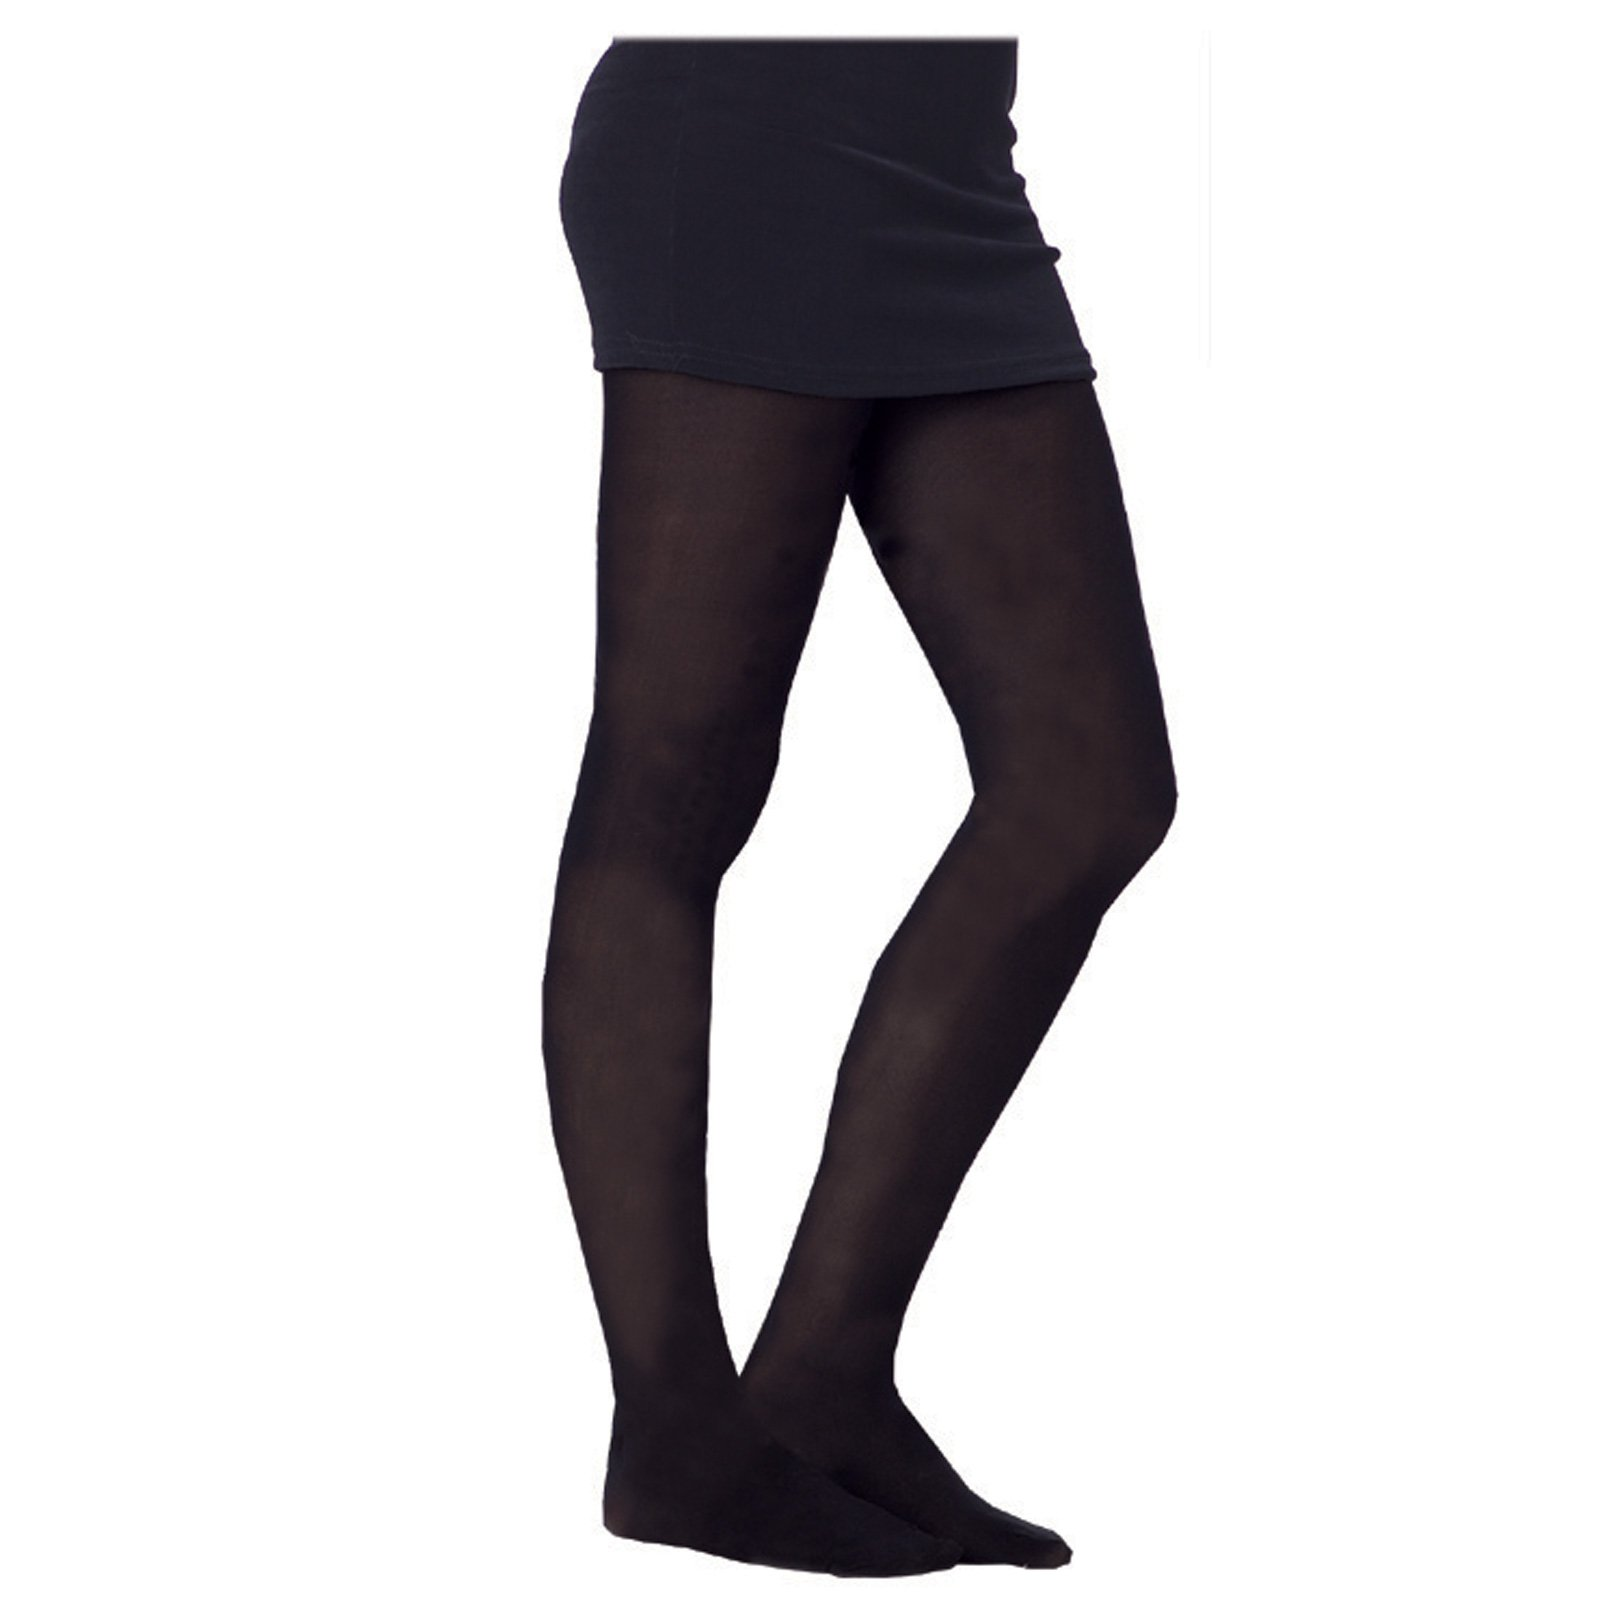 Shop eBay for great deals on Black Pantyhose & Tights for Women. You'll find new or used products in Black Pantyhose & Tights for Women on eBay. Free shipping on selected items.